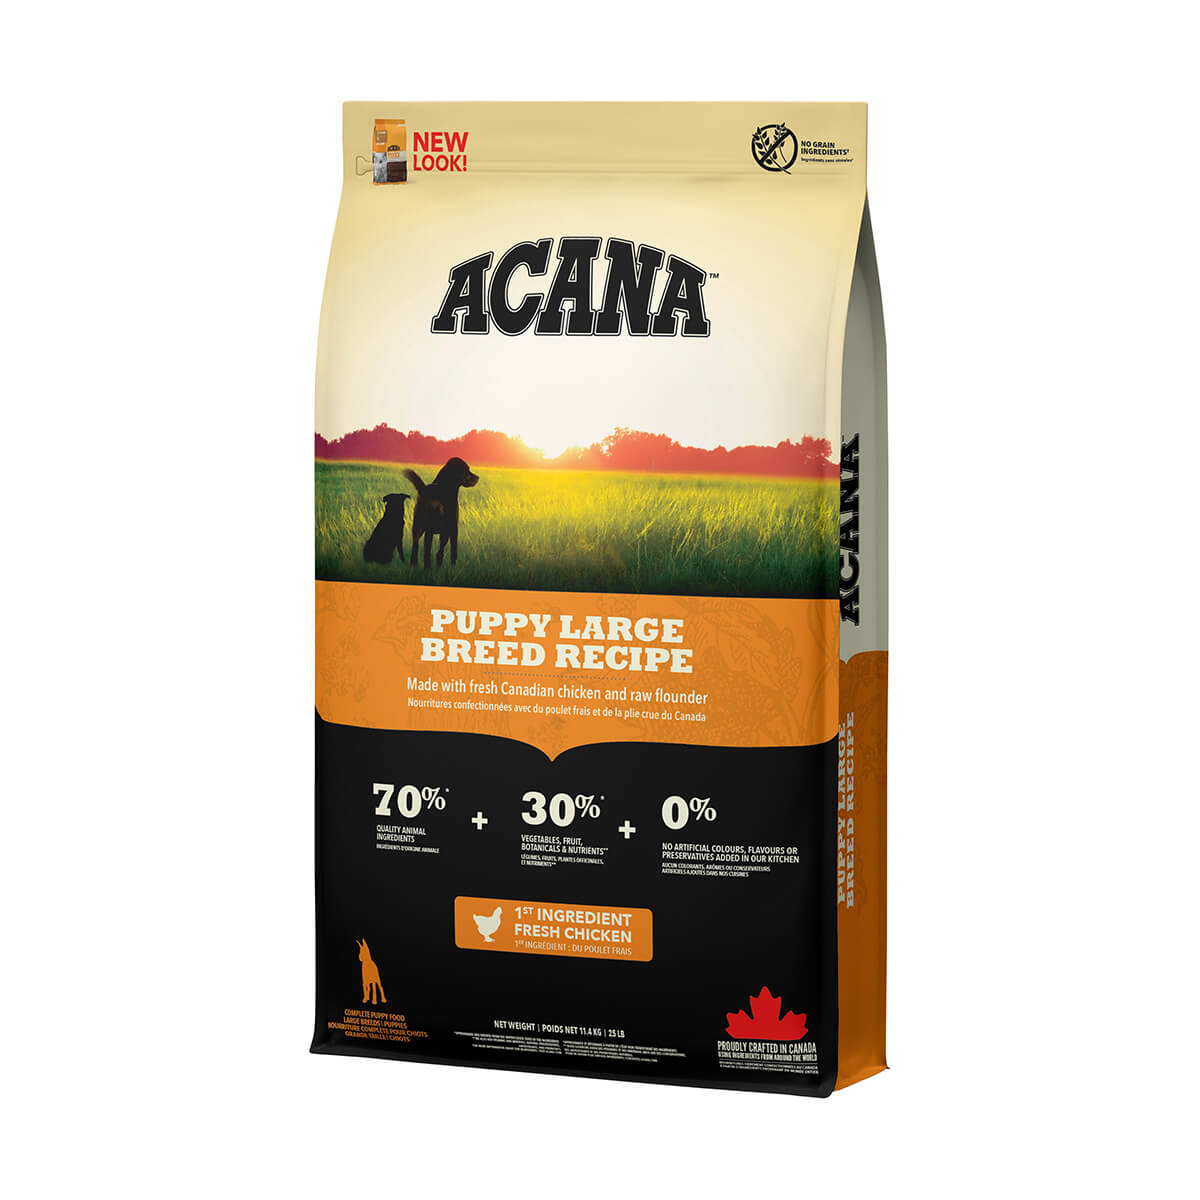 Acana Puppy Large Breed Dog Food 11.4 kg